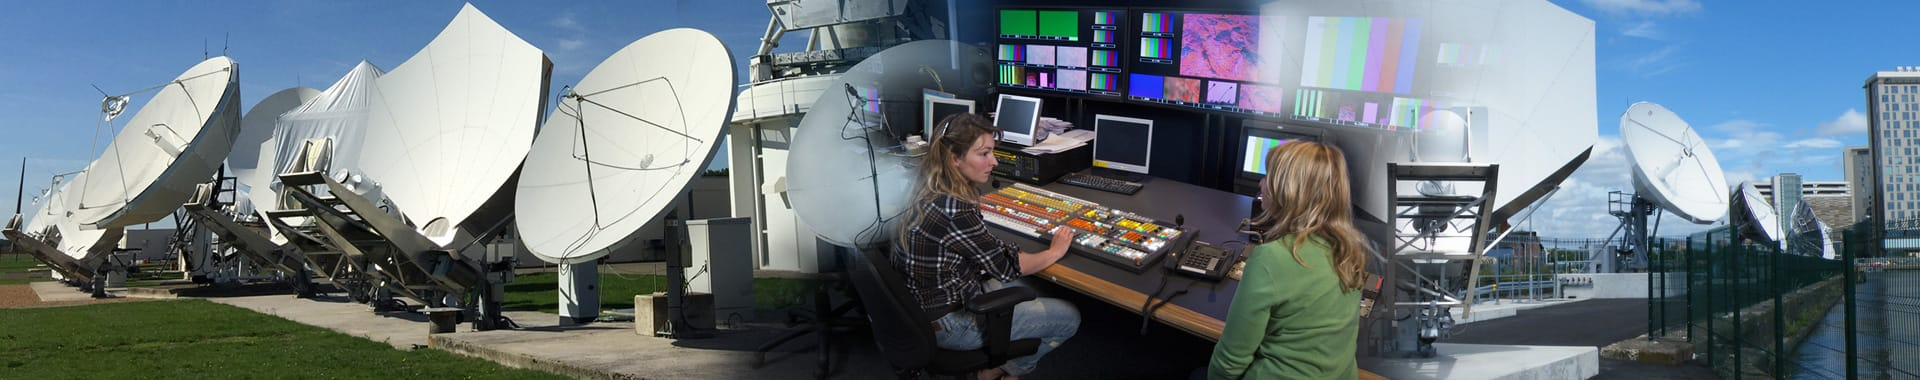 Satellite dishes at two teleports and girls working in a control room